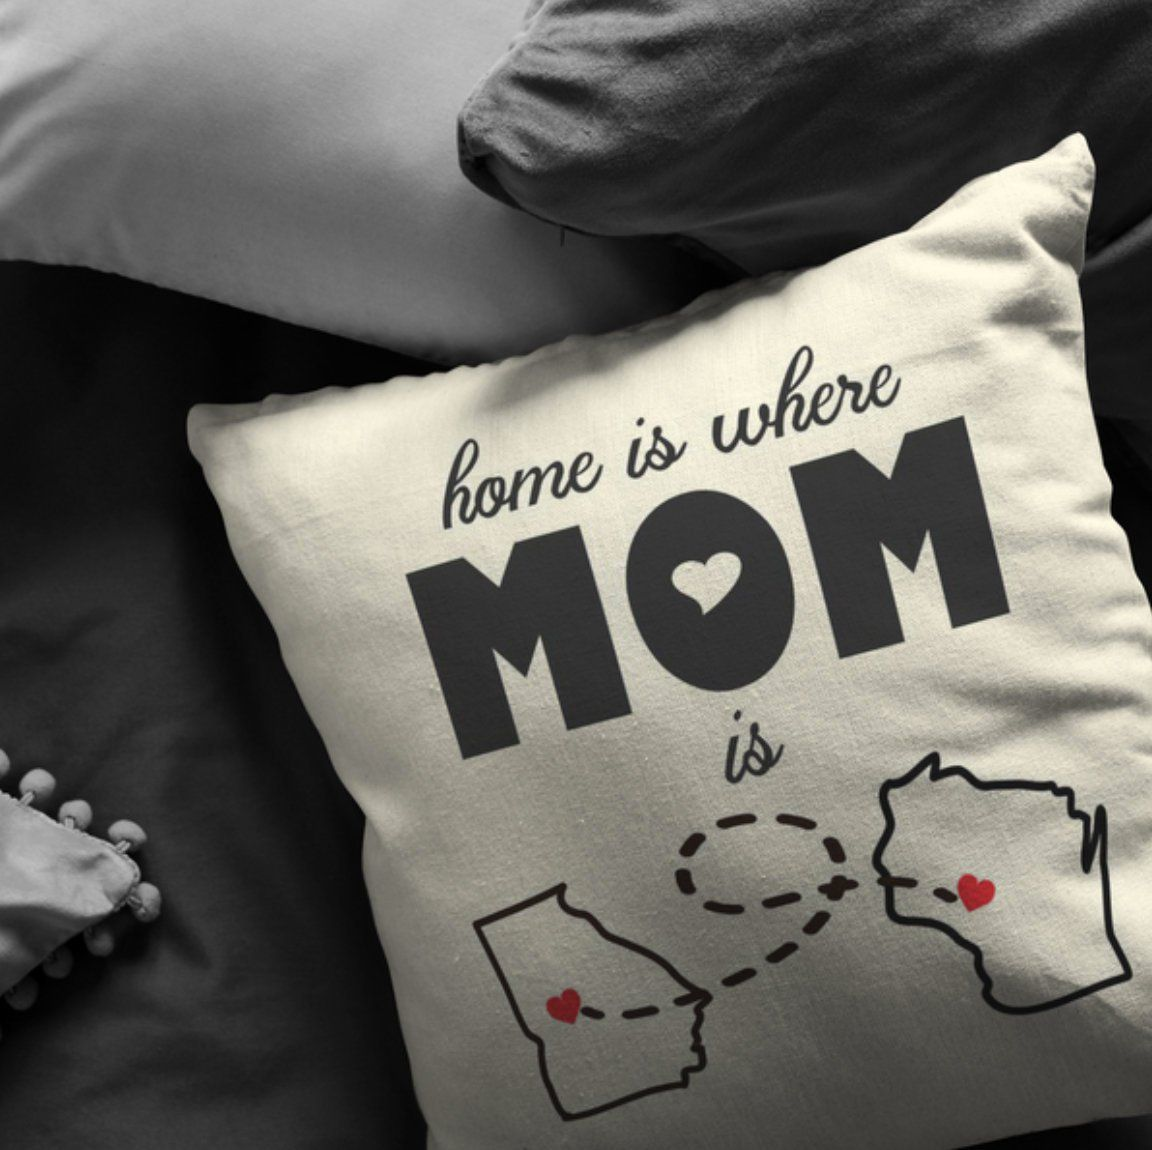 Christmas gift for mom gift ideas long distance gift home